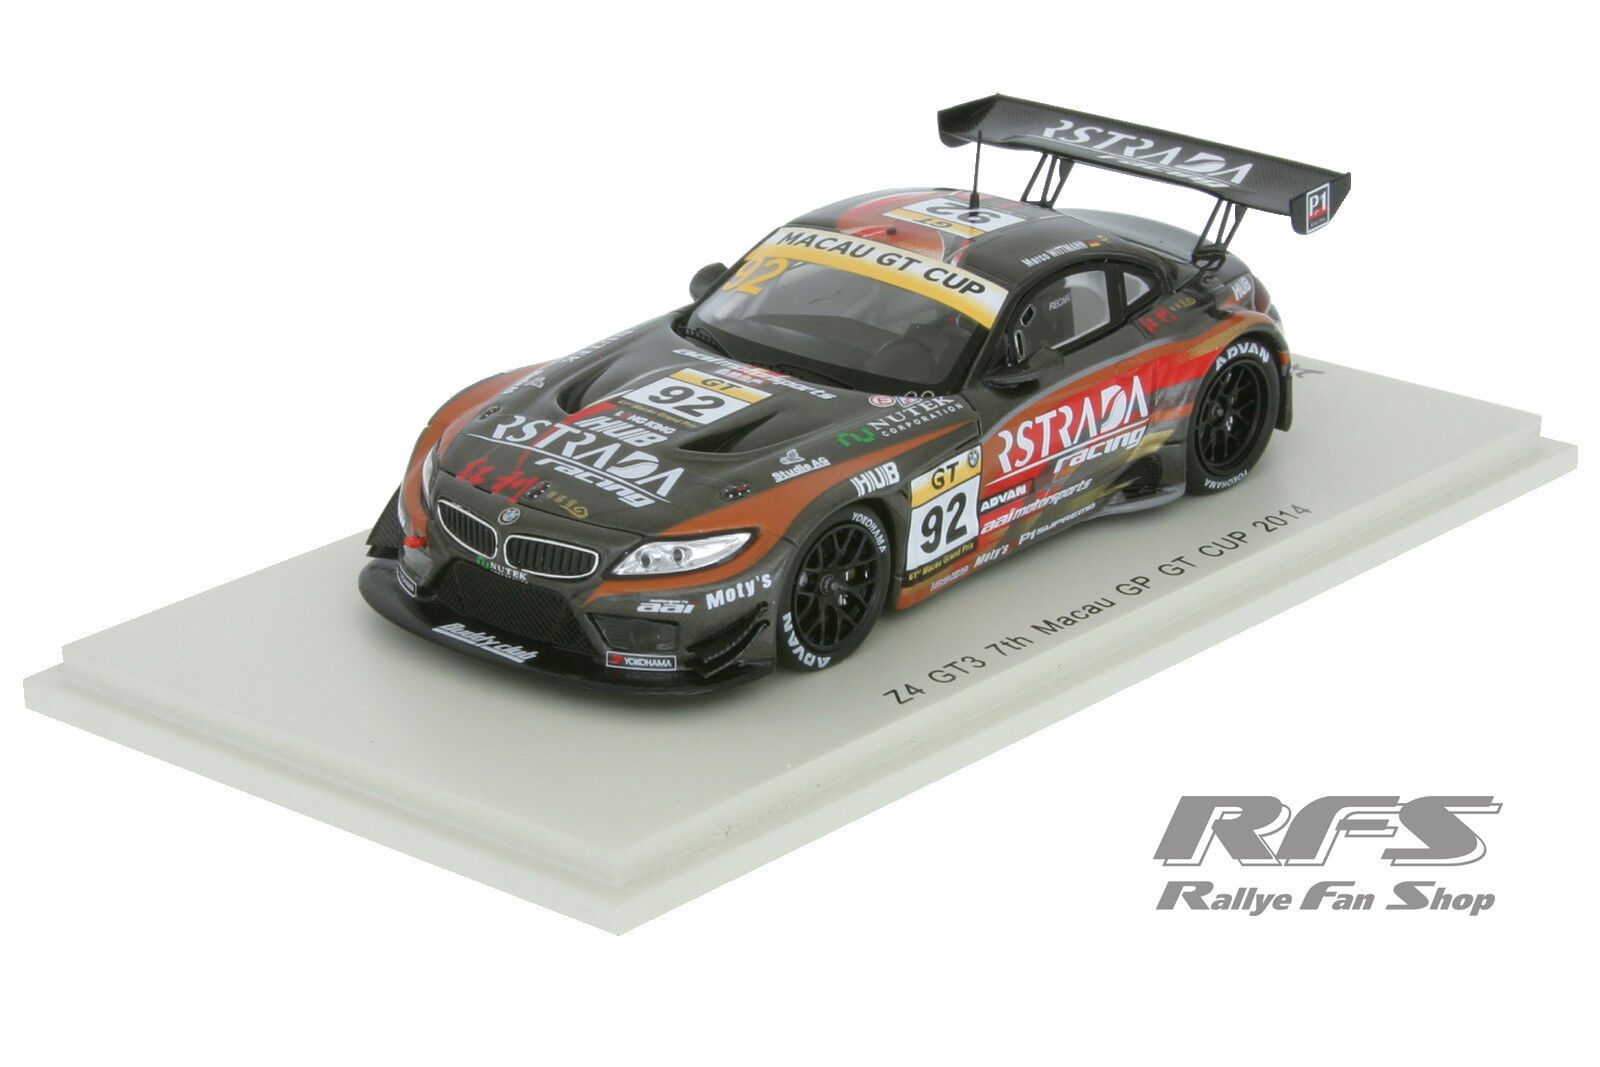 BMW z4 gt3-Macao GP GT Coupe 2014-Marco Wittmann WAV - 1 43 Spark sa073